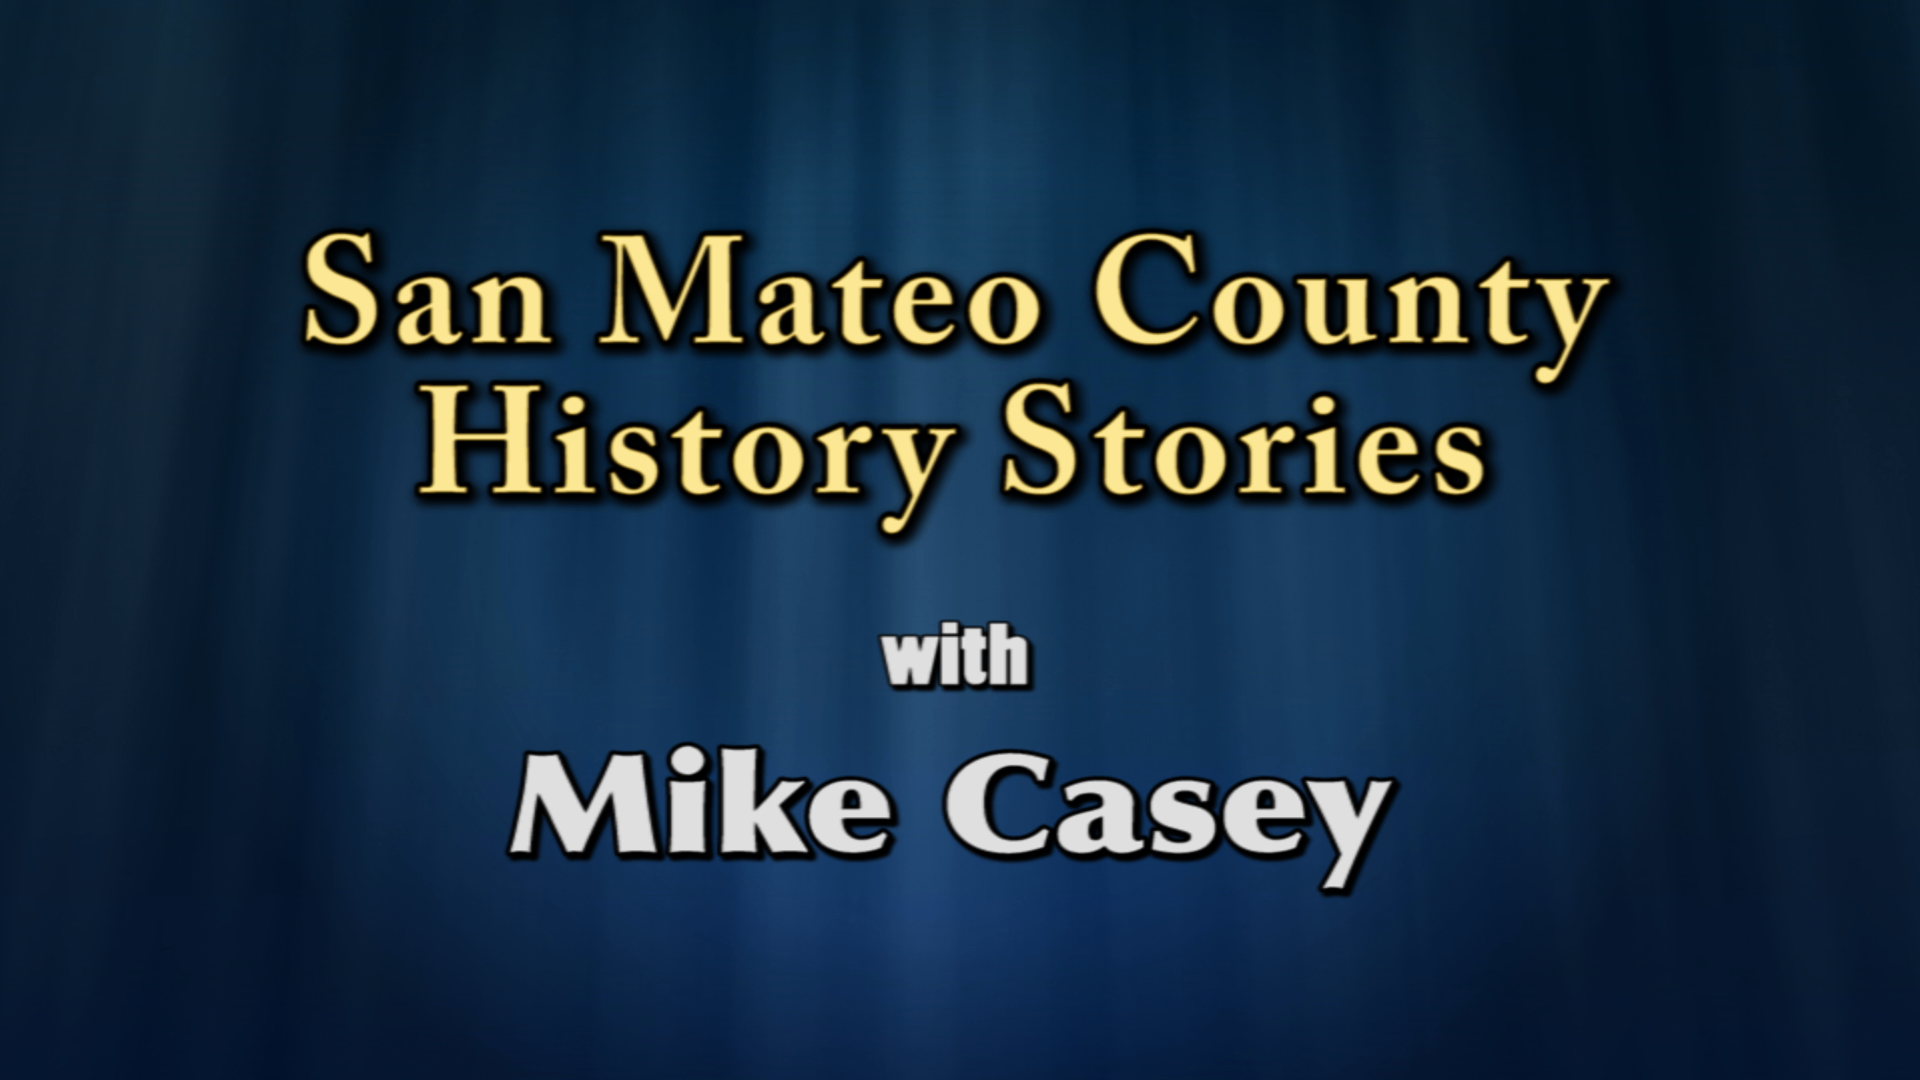 SMC History Stories with Mike Casey